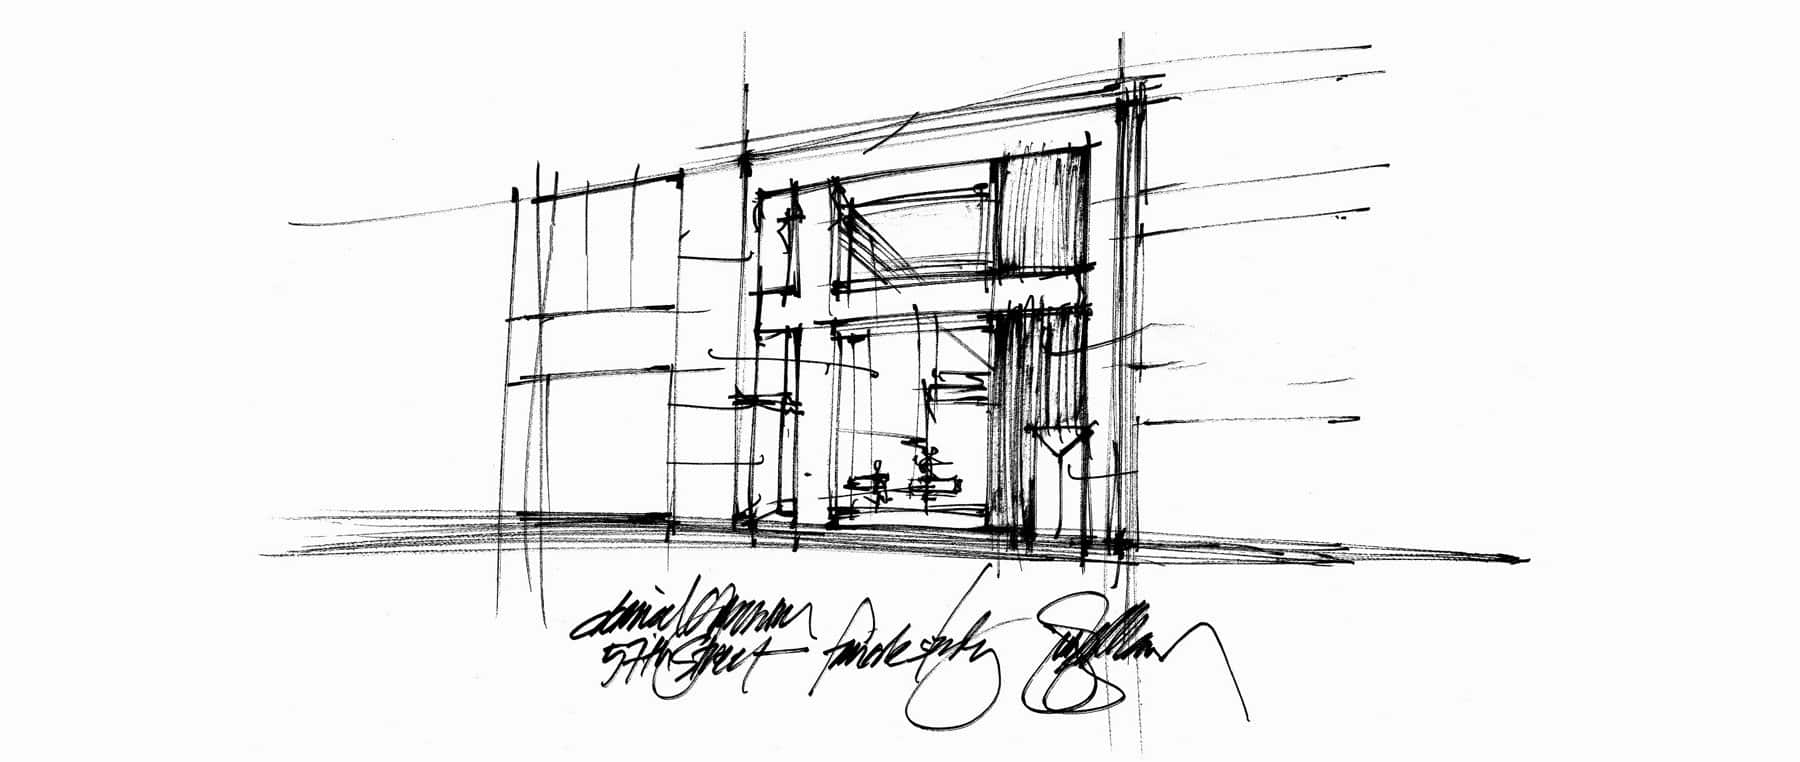 A loose black-and-white sketch of the exterior of the new David Yurman flagship store in New York City. The sketch depicts the front of the store and the building next to it with a door, rectangular windows and a cross-shaped element framing the windows.